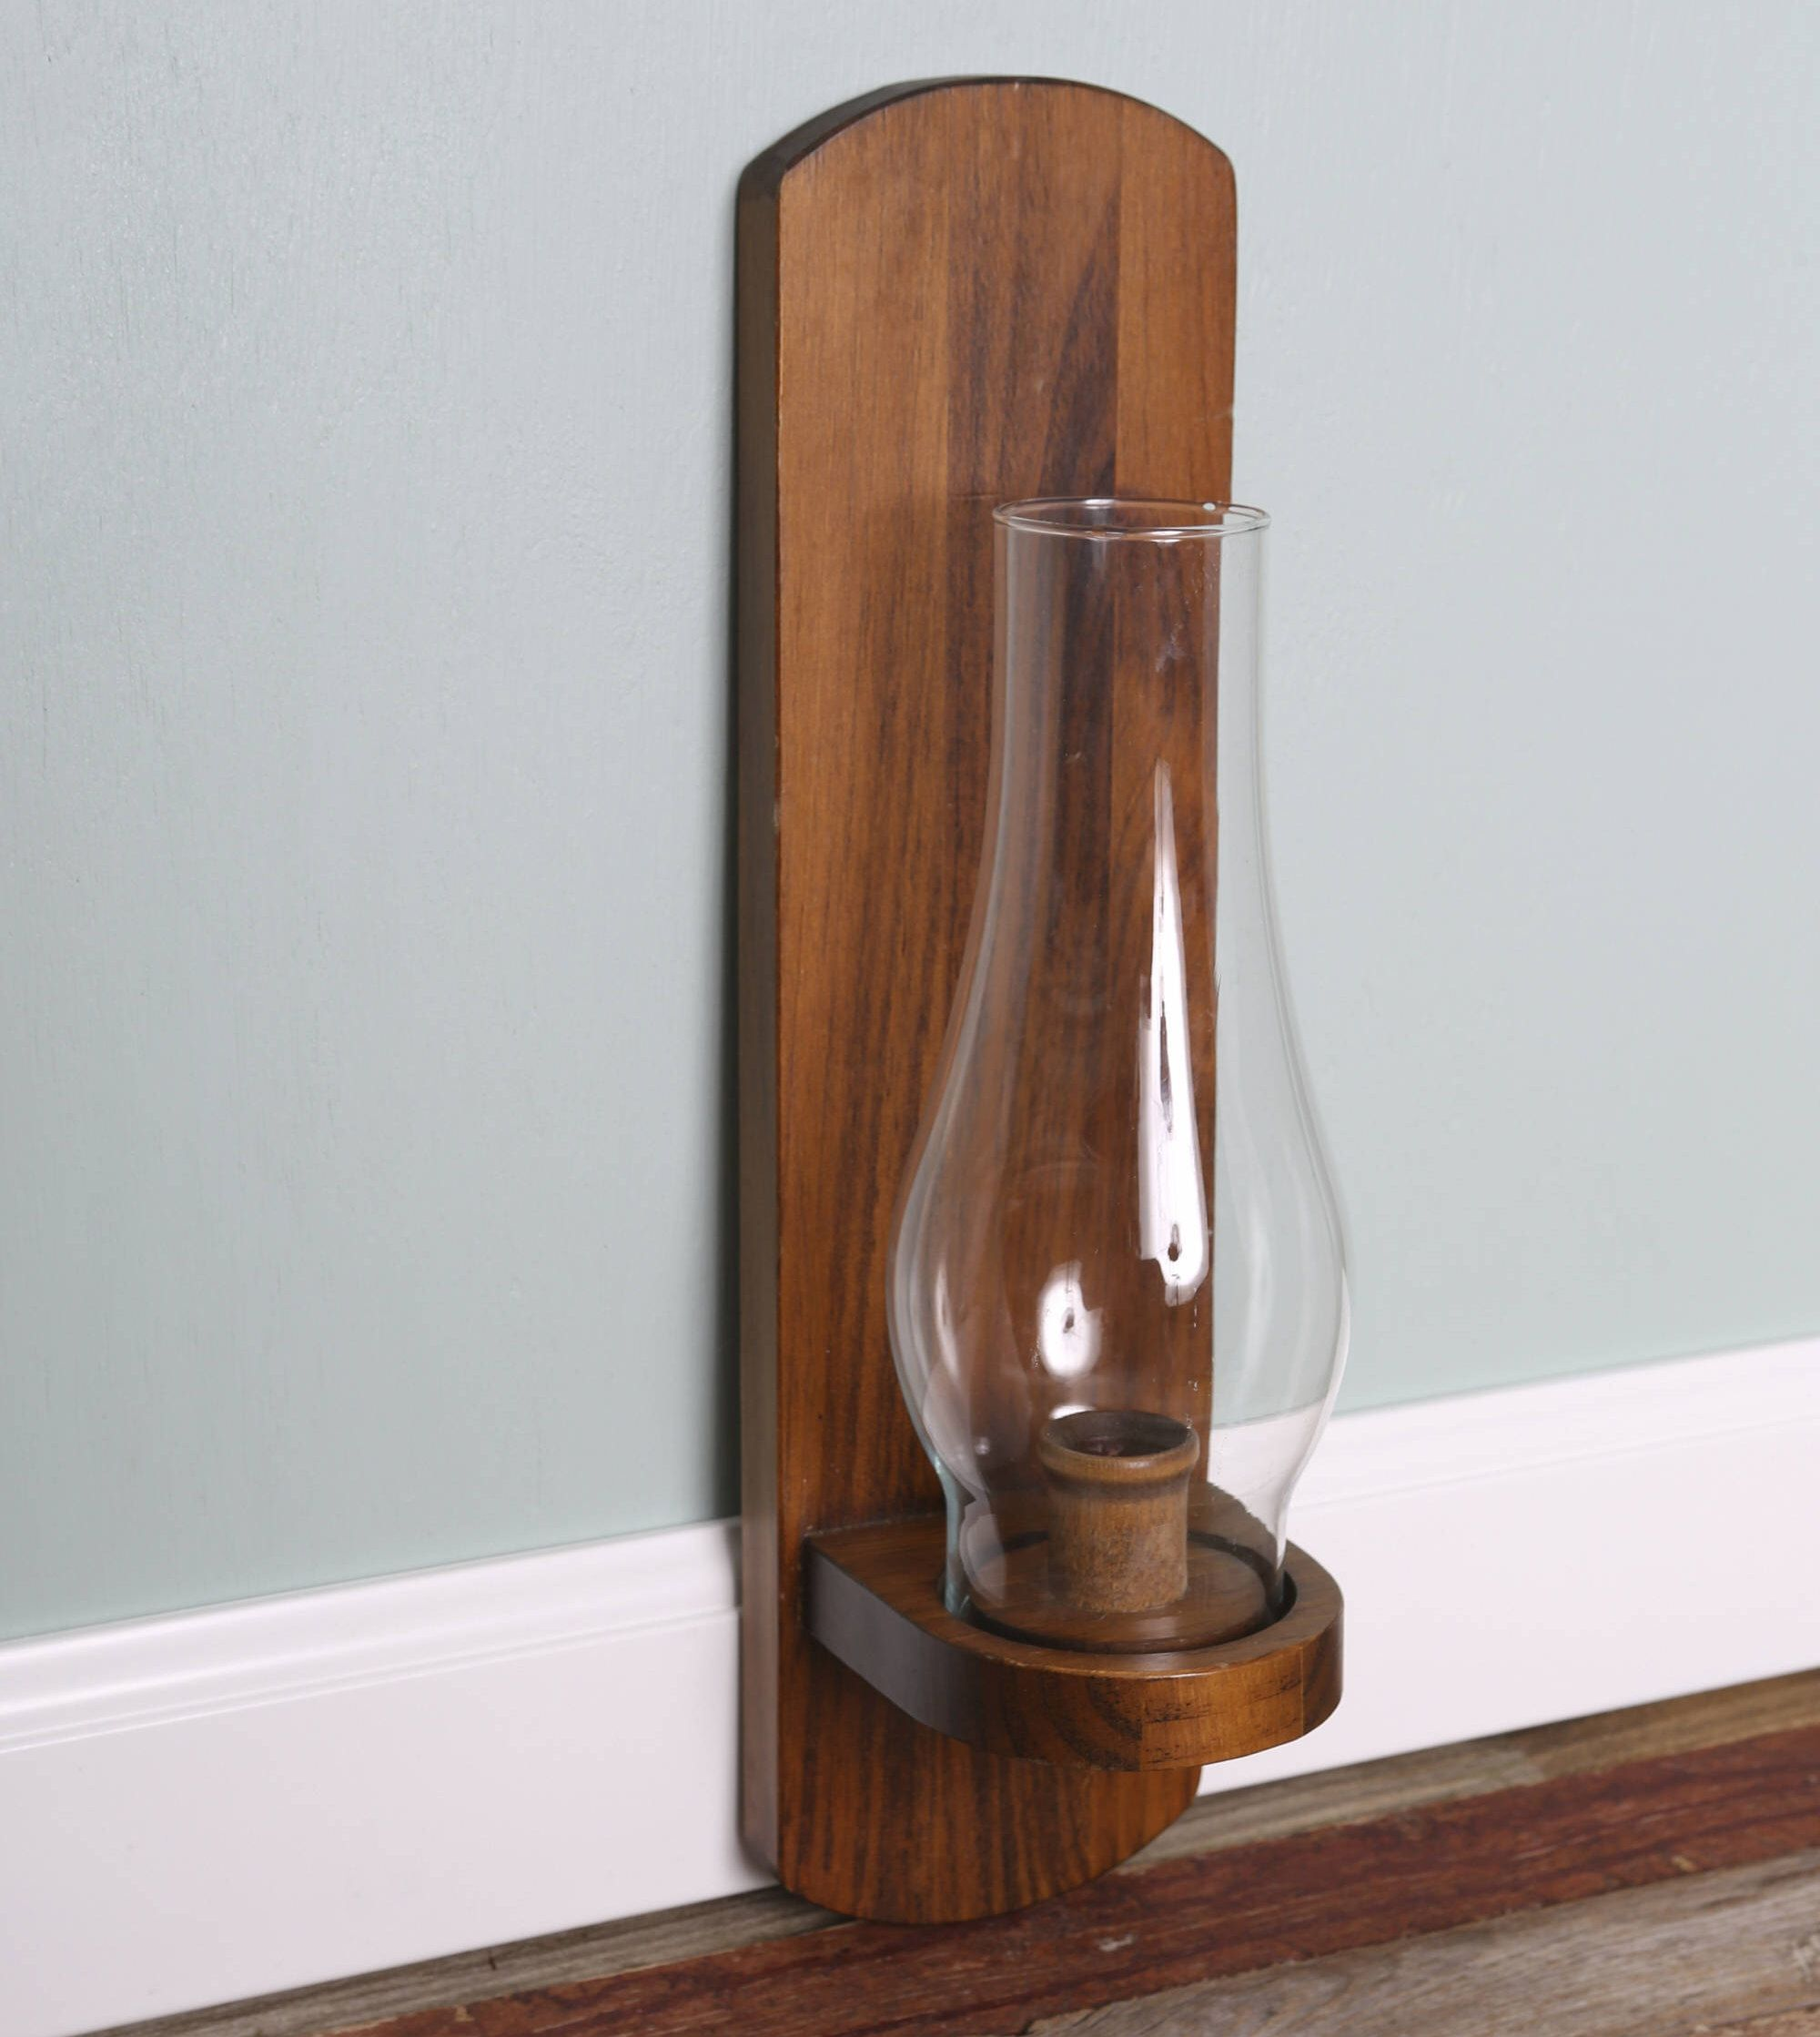 Vintage Wood Wall Tall Candle Holder Taper Colonial Wall Sconce with